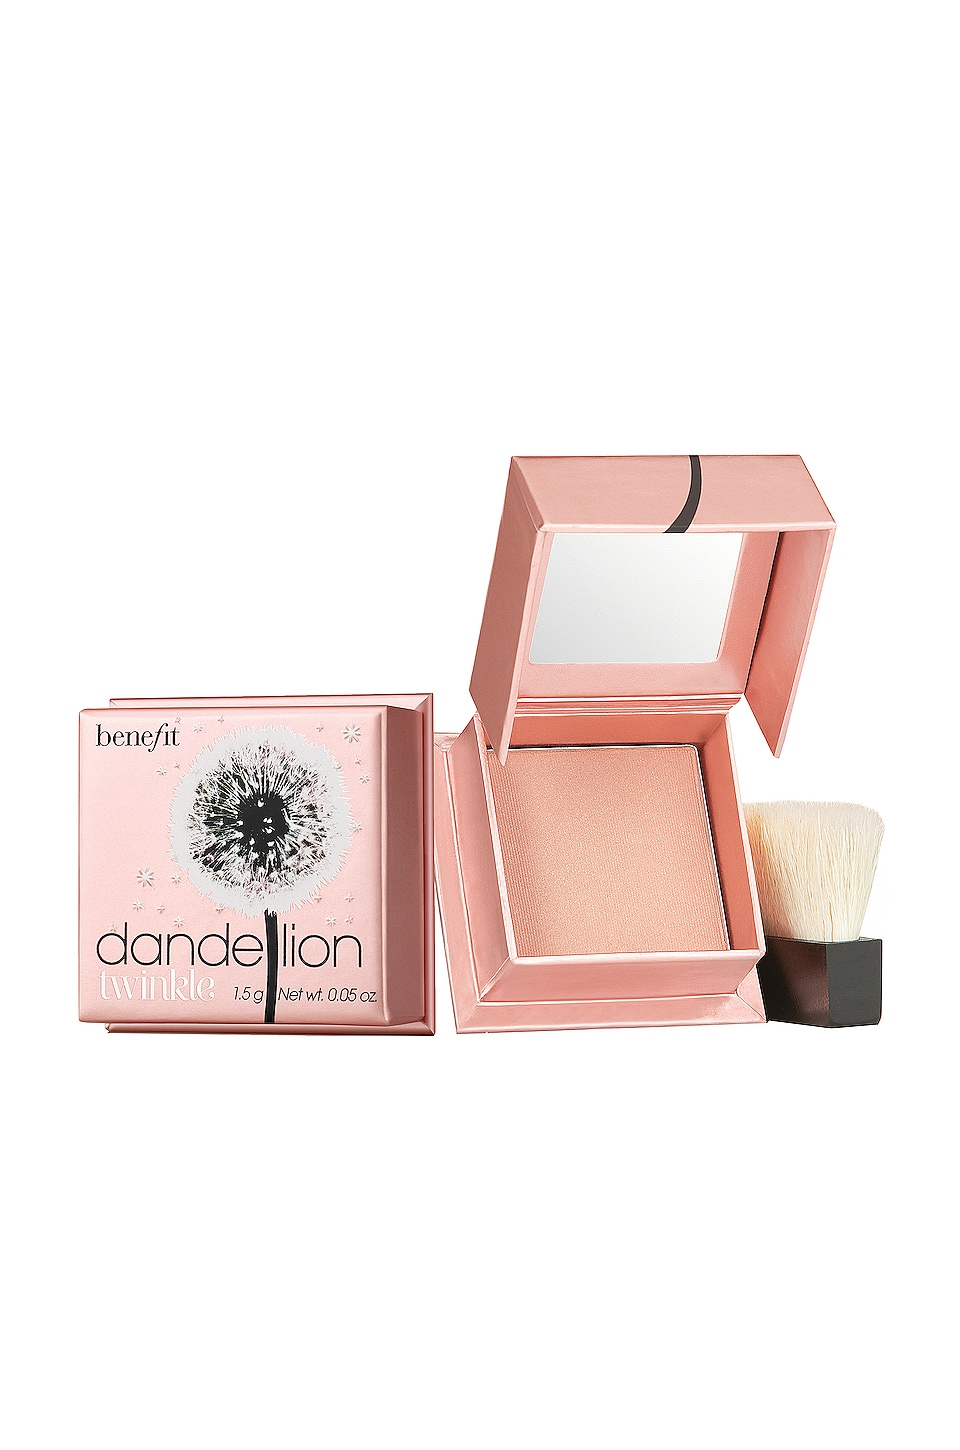 Benefit Cosmetics Dandelion Twinkle Powder Highlight Mini